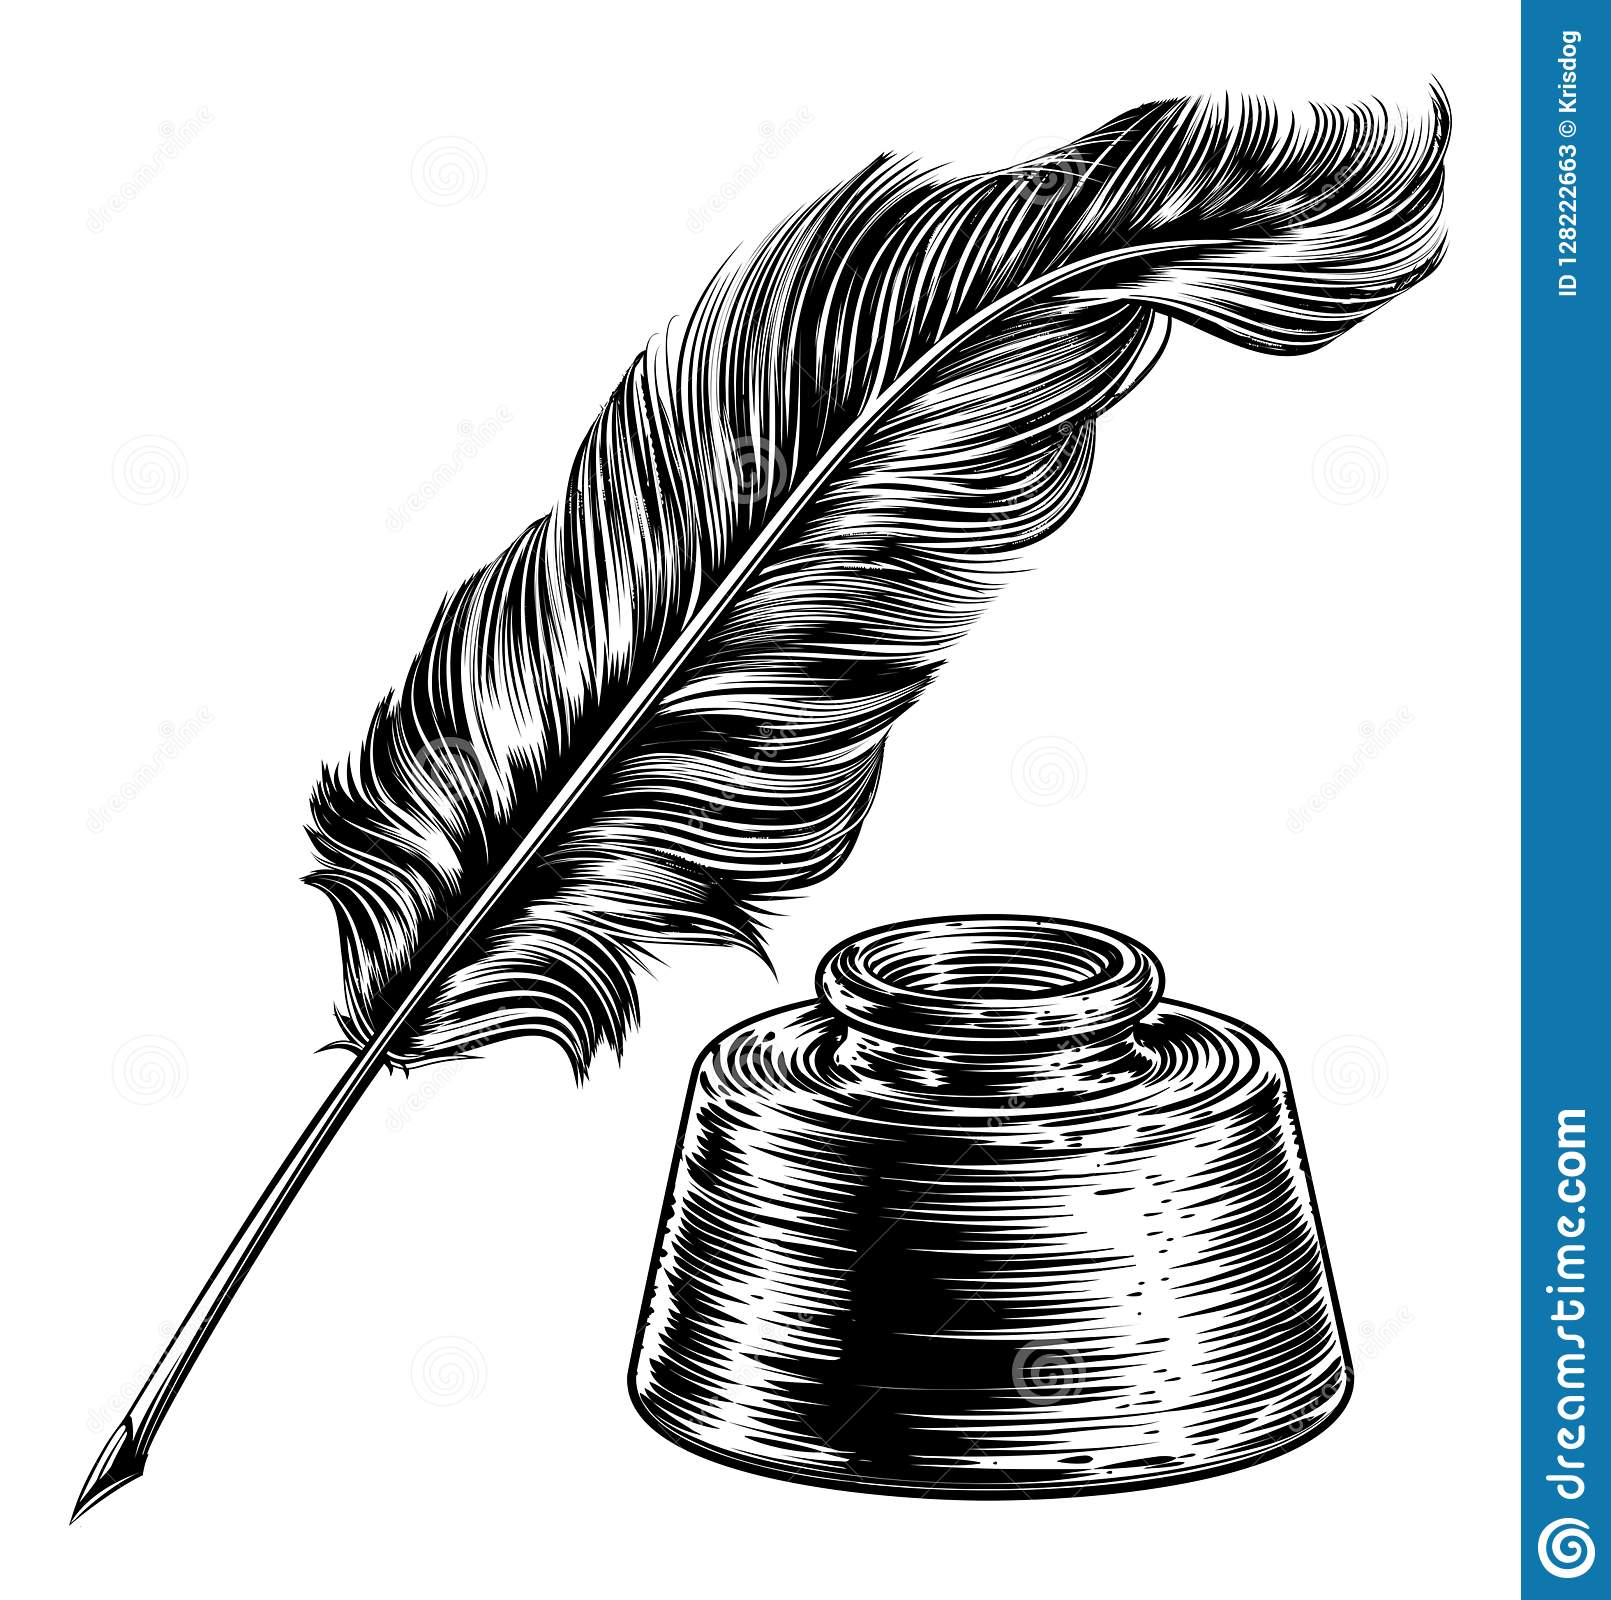 Quill Feather Pen And Ink Well Stock Vector - Illustration ...Quill And Inkwell Image